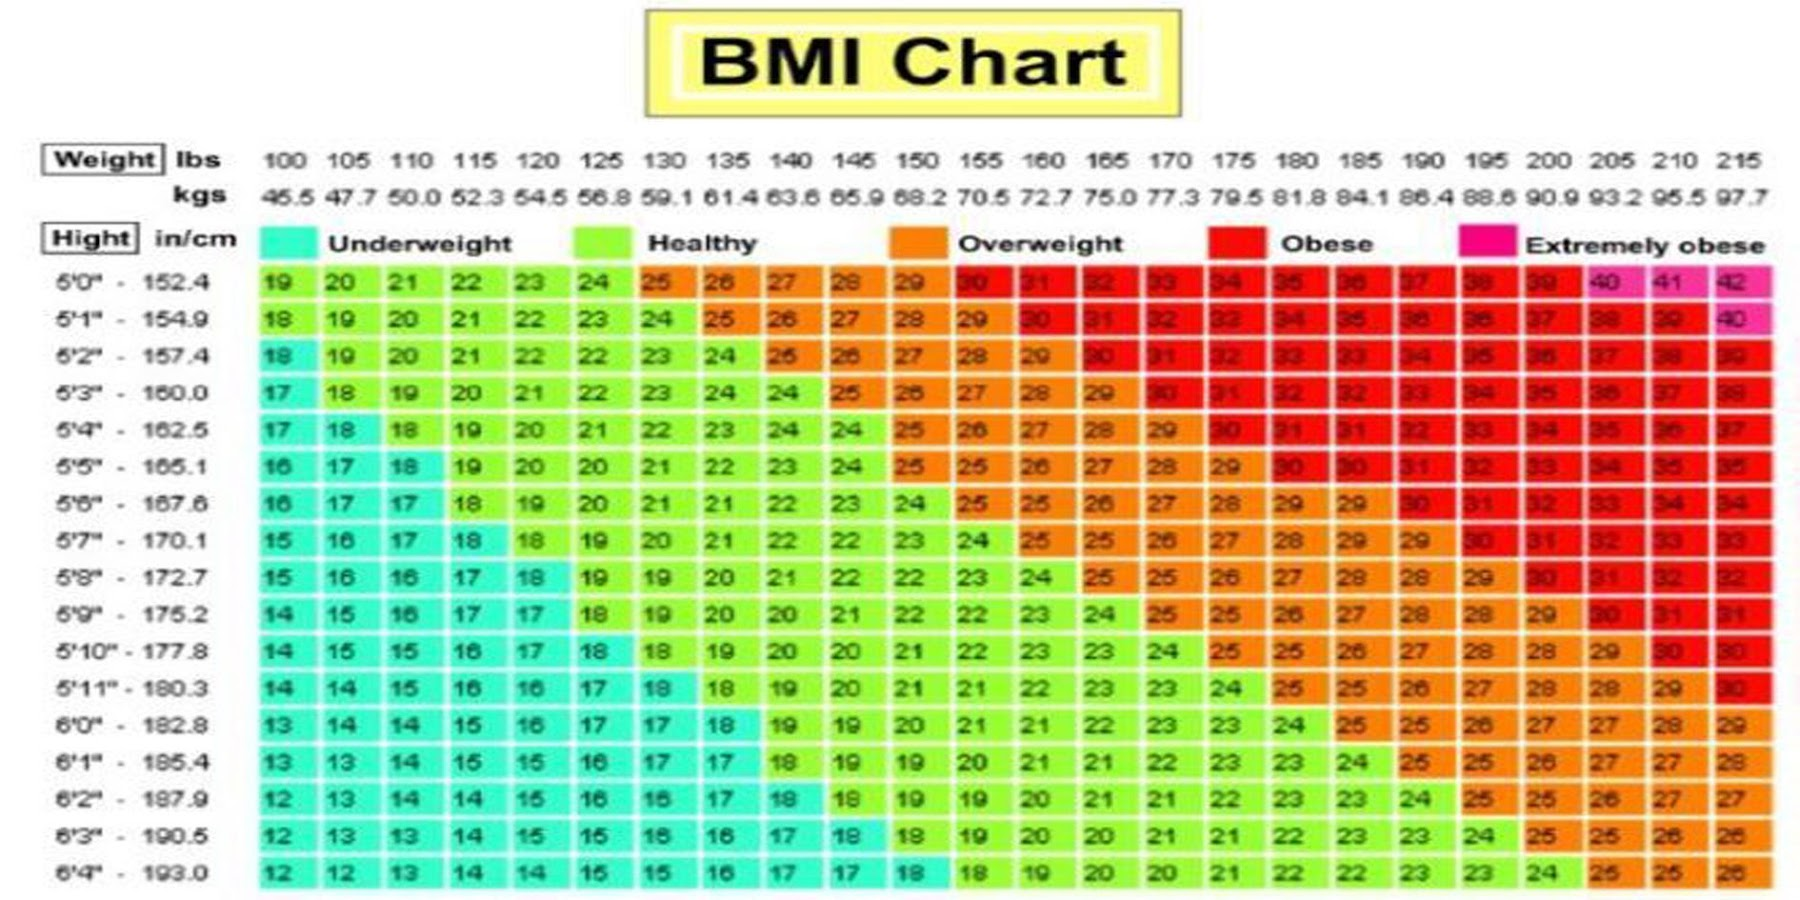 morbidly obese chart kg: Morbidly obese chart kg about bmi ratelco com